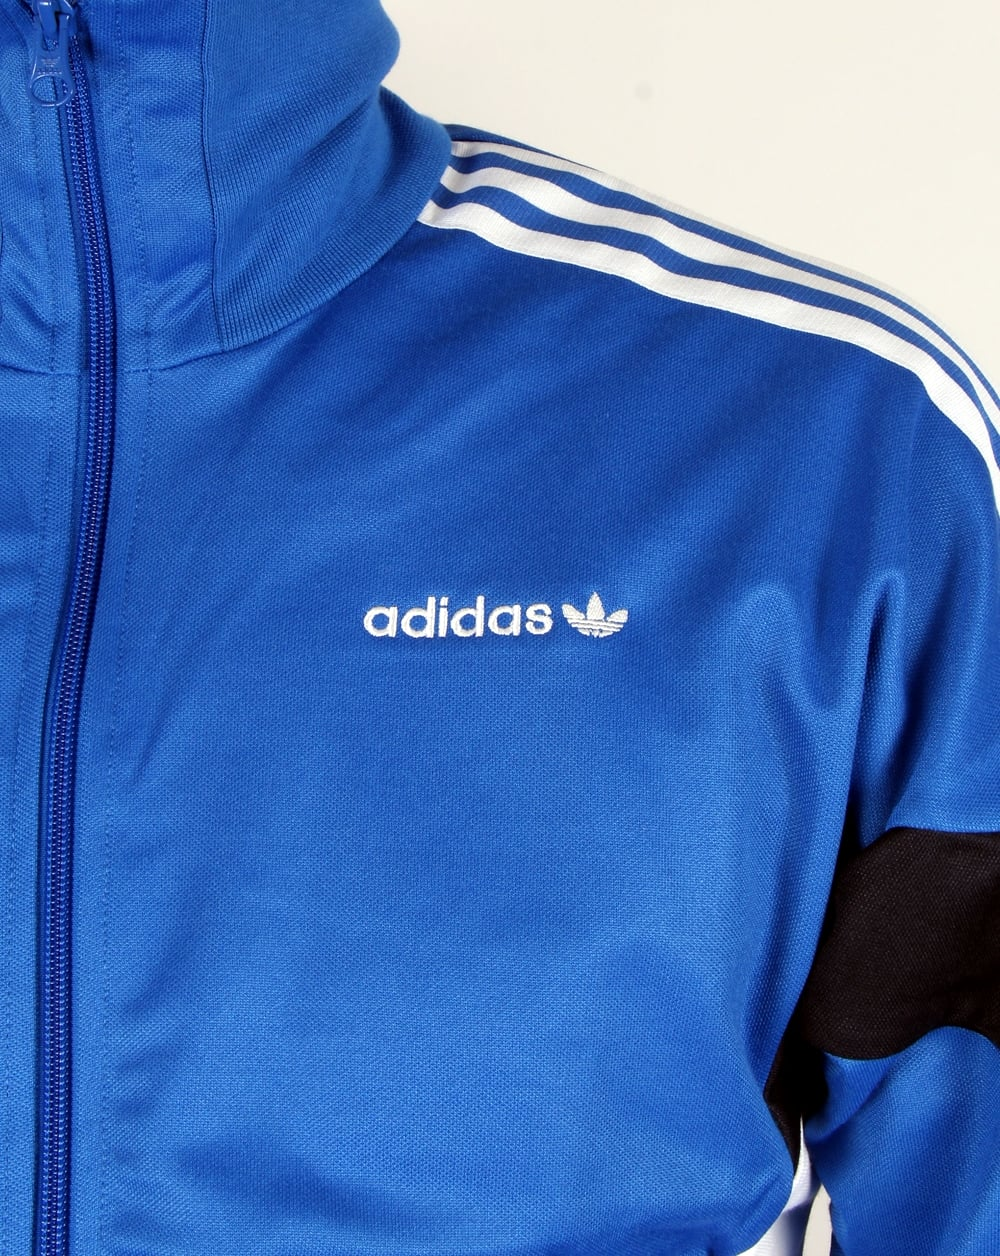 adidas originals clr84 track top blue men 39 s jacket. Black Bedroom Furniture Sets. Home Design Ideas